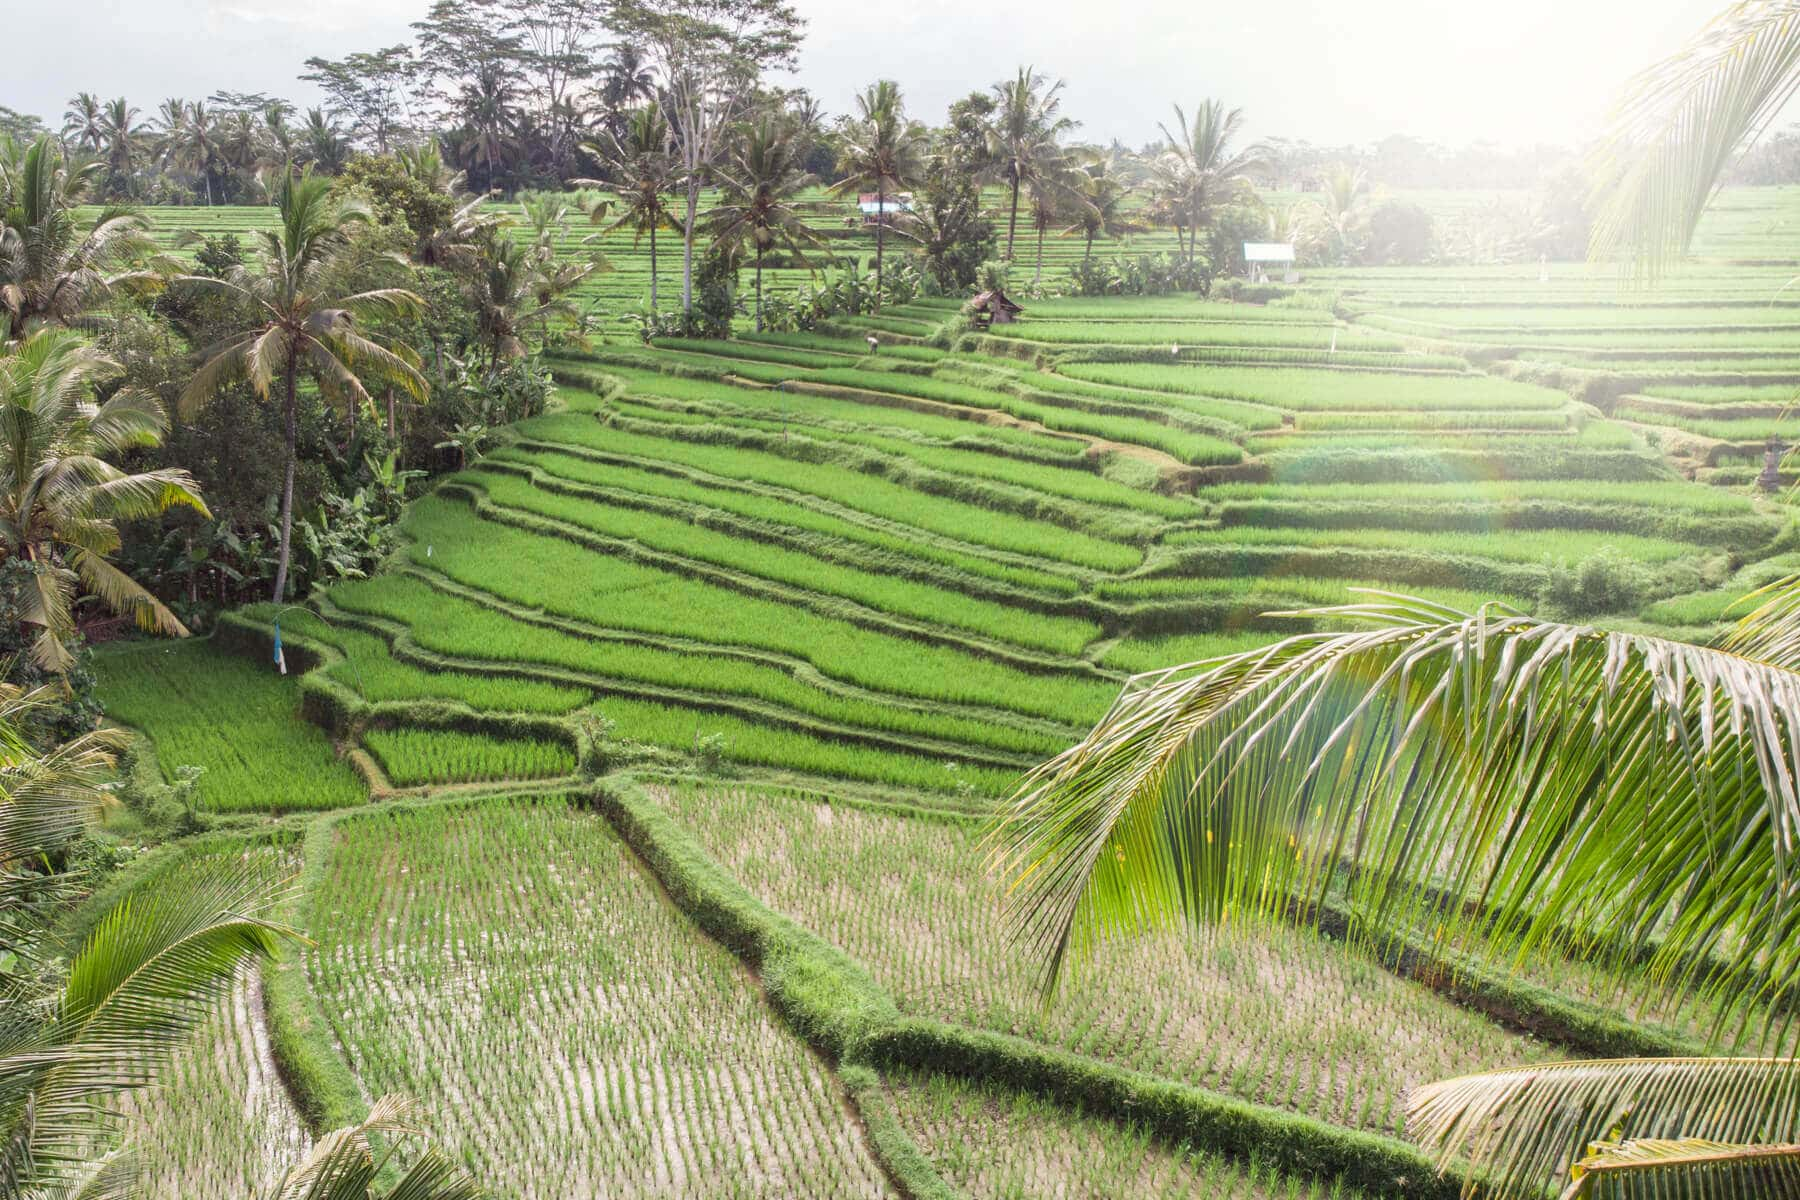 Island Life #4 - Our awesome rice field Airbnb in Ubud